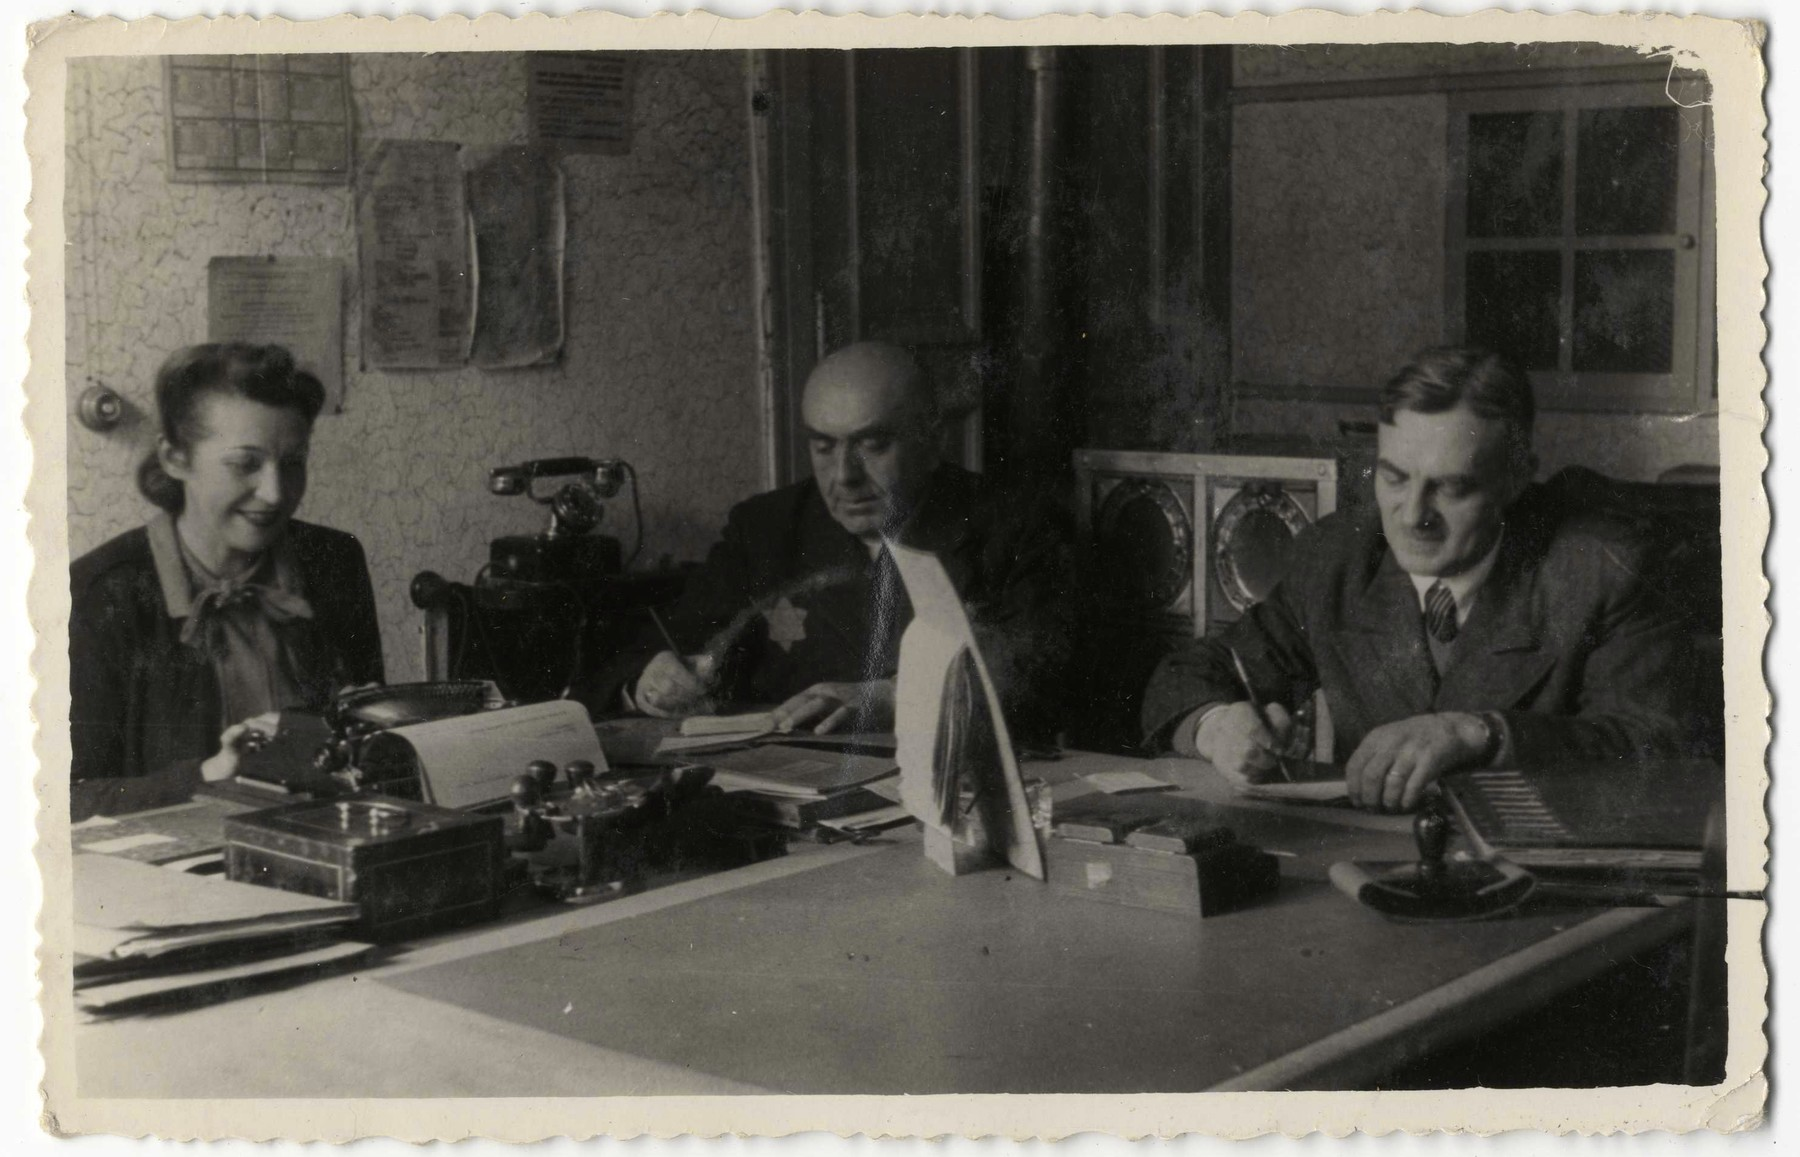 The directors of the Zentral Einkaufstelle, the central purchasing department of the ghetto, work at their desk.  Pictured on the far right is Gustaw Gerson, the director of the Einkaufstelle.  In the center is Lipnowski, the co-director, and Stefa, the secretary is on the left.